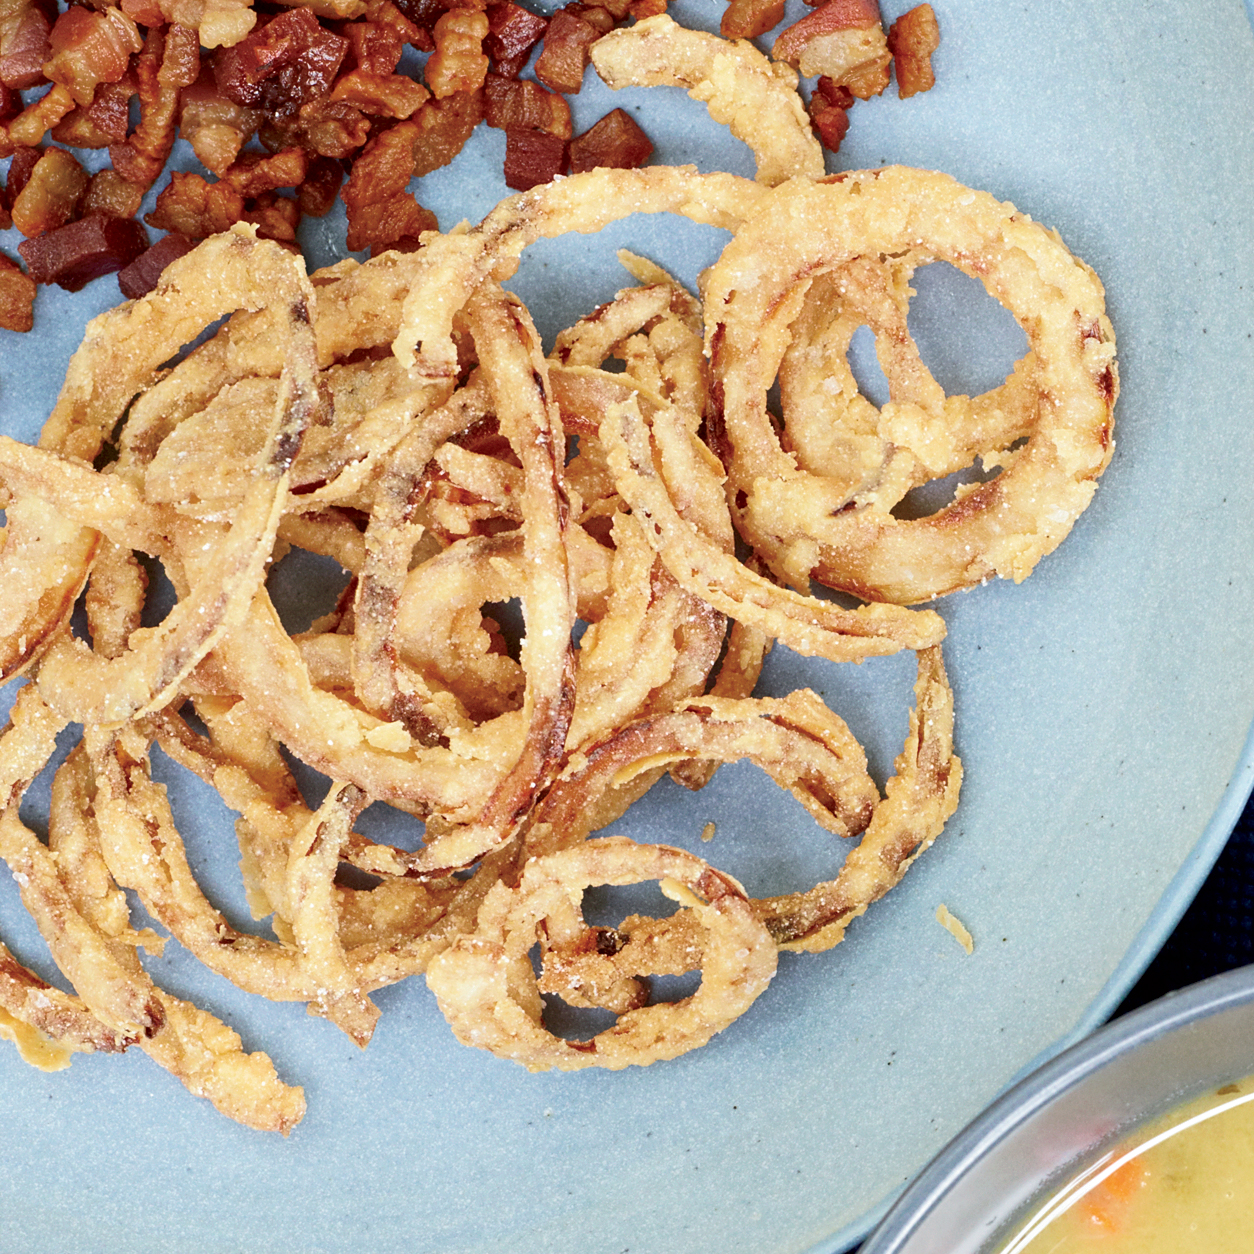 201103-r-crispy-onion-rings.jpg